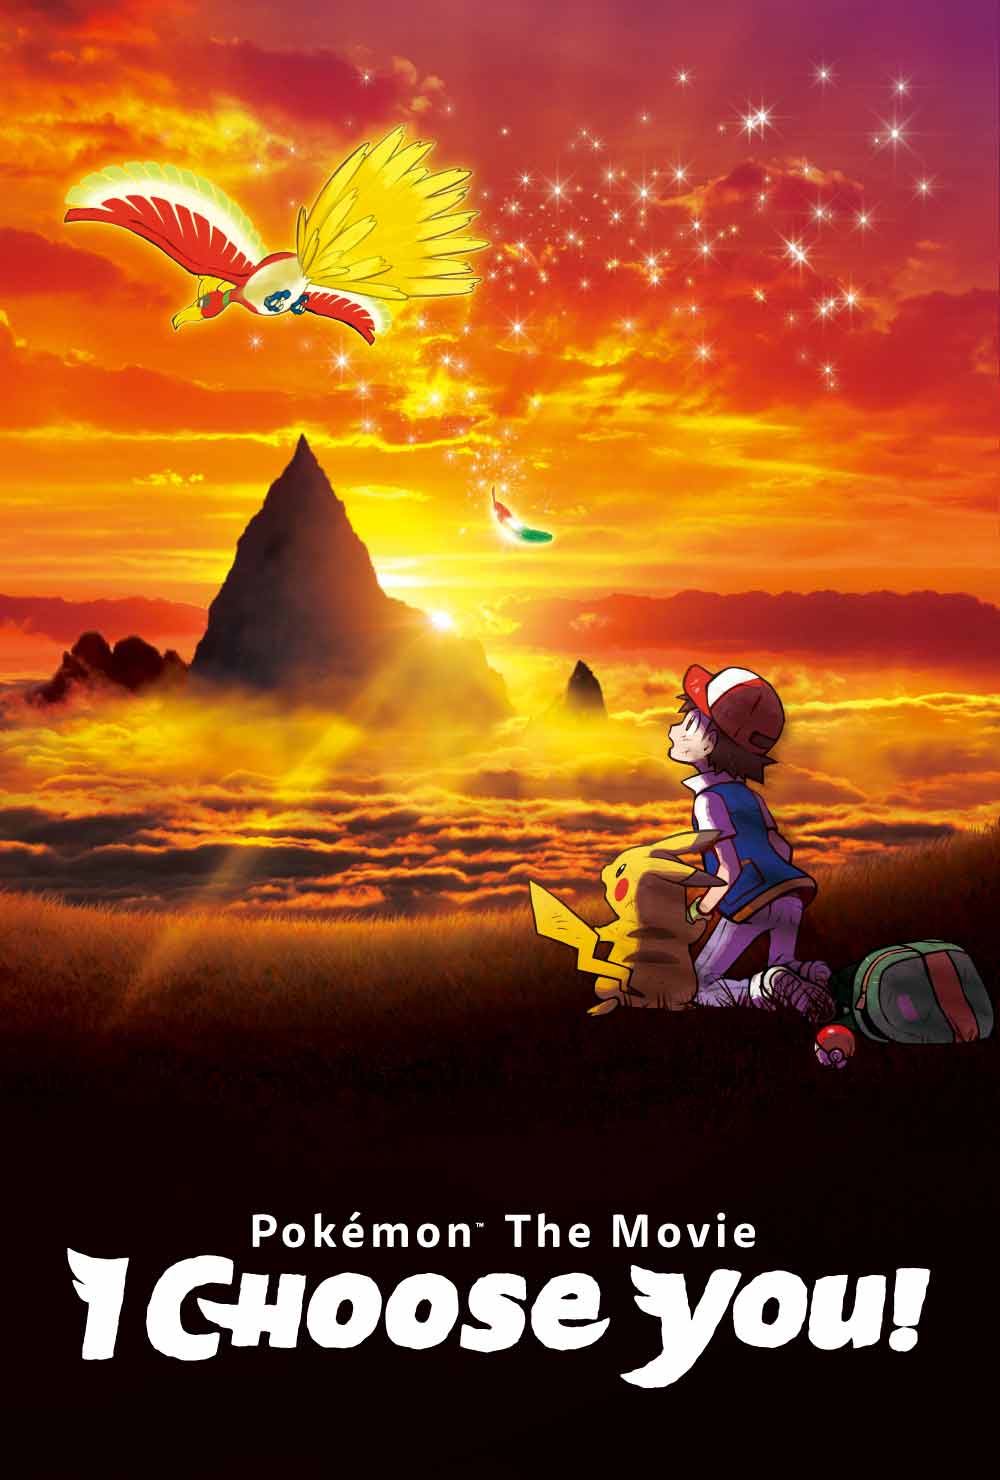 Pok    mon the Movie  I Choose You  In Movie Theaters   Fathom Events Pok    mon the Movie  I Choose You